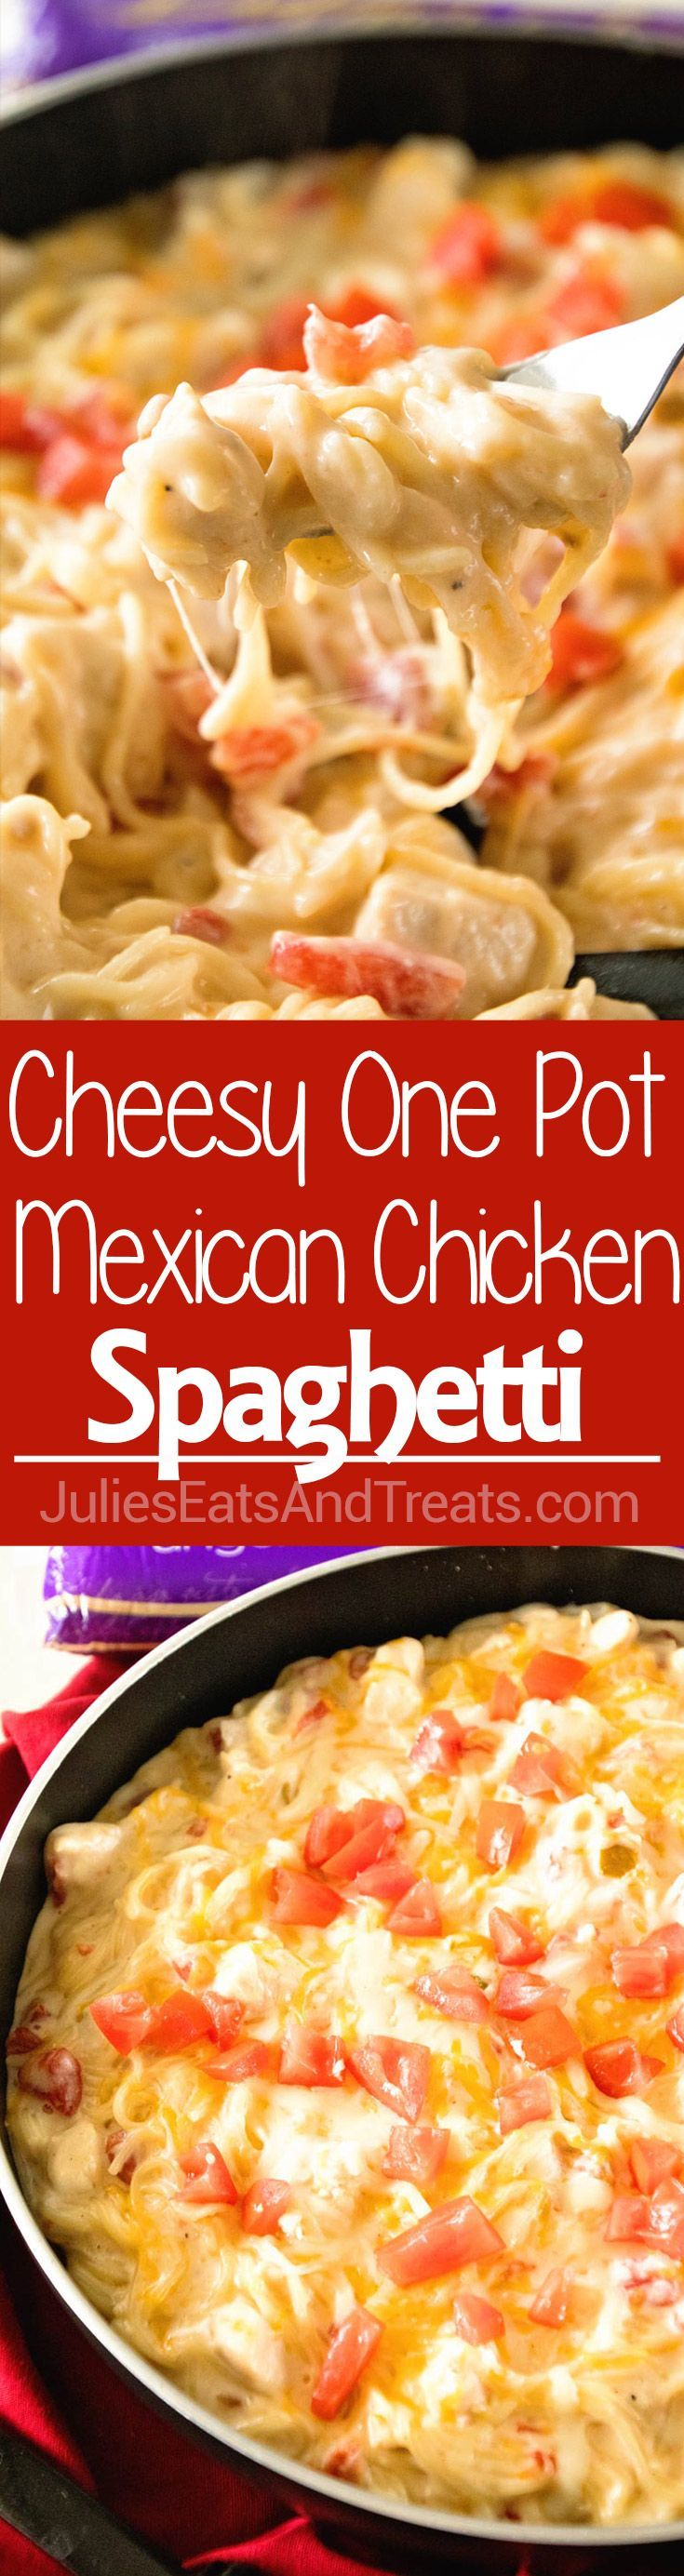 One Pot Mexican Chicken Spaghetti ~ Delicious One Pot Pasta Recipe with Mexican Flavor! Creamy, Mexican Chicken Spaghetti Recipe with a Kick is on the Table in 30 Minutes! via @julieseats @DaVinciPasta, #EndlessPastabilities #PastaPersonalitiesju